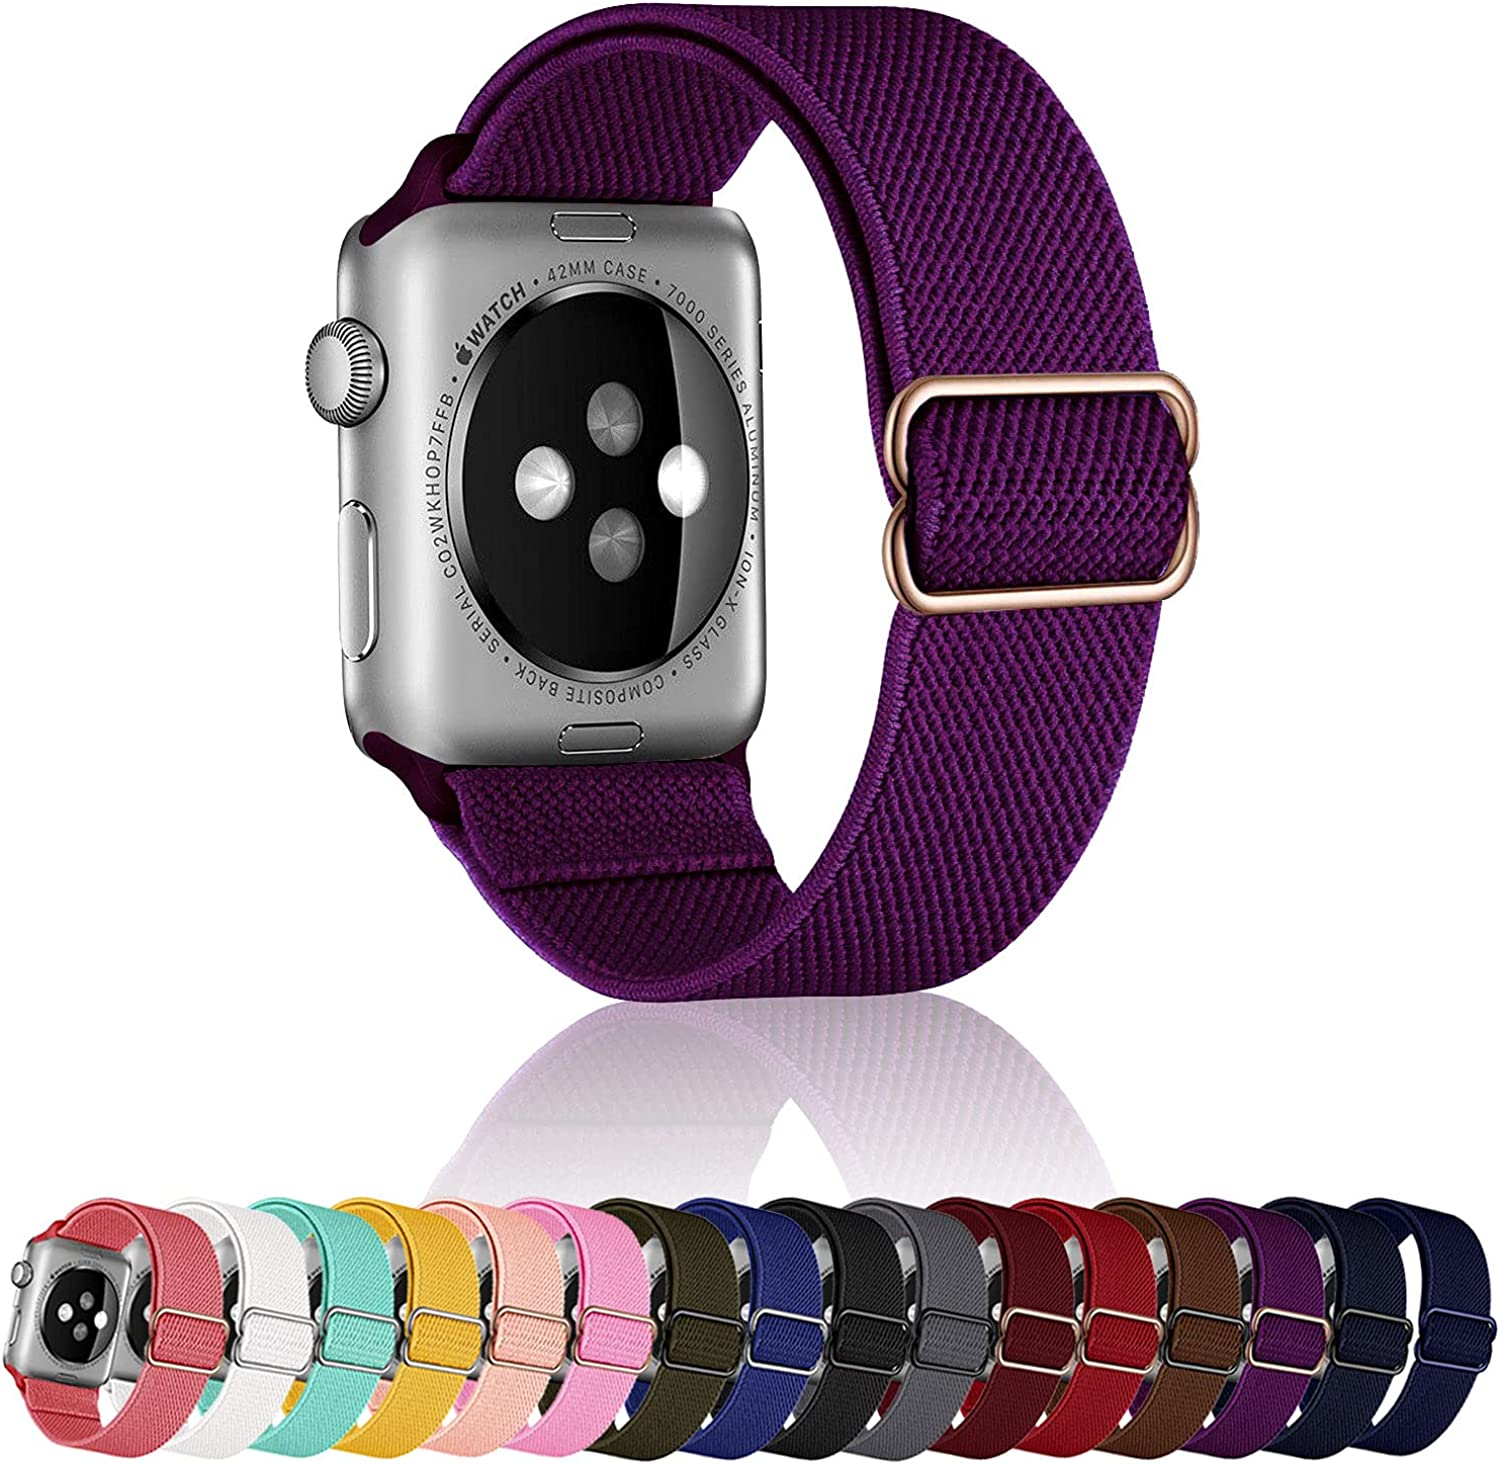 SACRONS Stretchy Nylon Solo Loop Compatible with Apple Watch Bands 38mm/40mm,42/44mm,Adjustable Braided Sport Elastic Nylon Wristband for i-Watch Series 6/SE/5/4/3/2/1